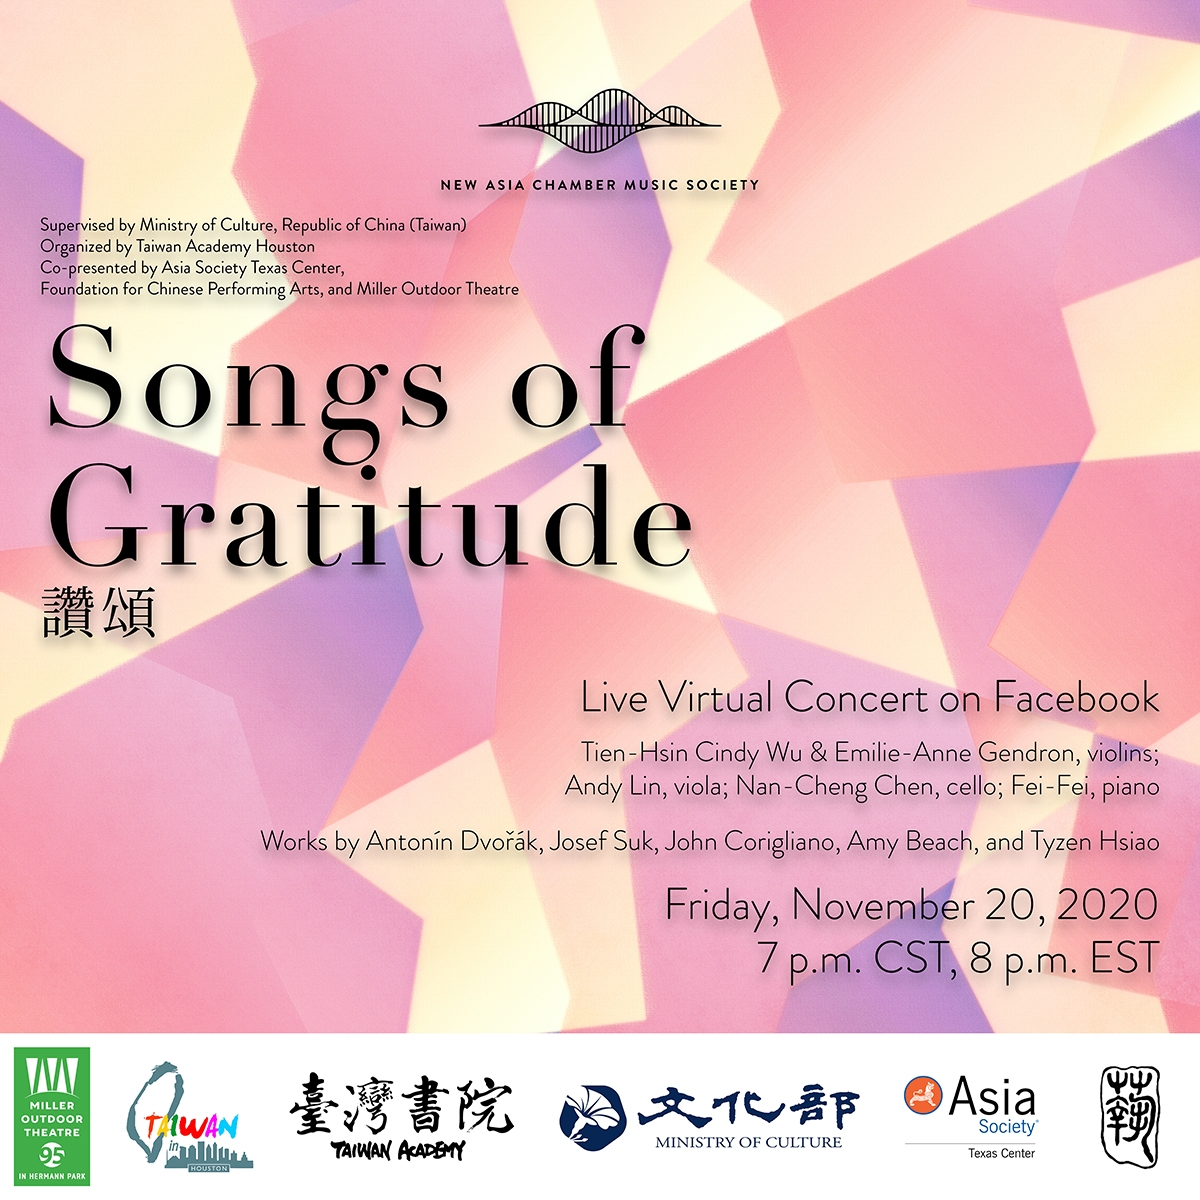 Songs of Gratitude by New Asia Chamber Music Society